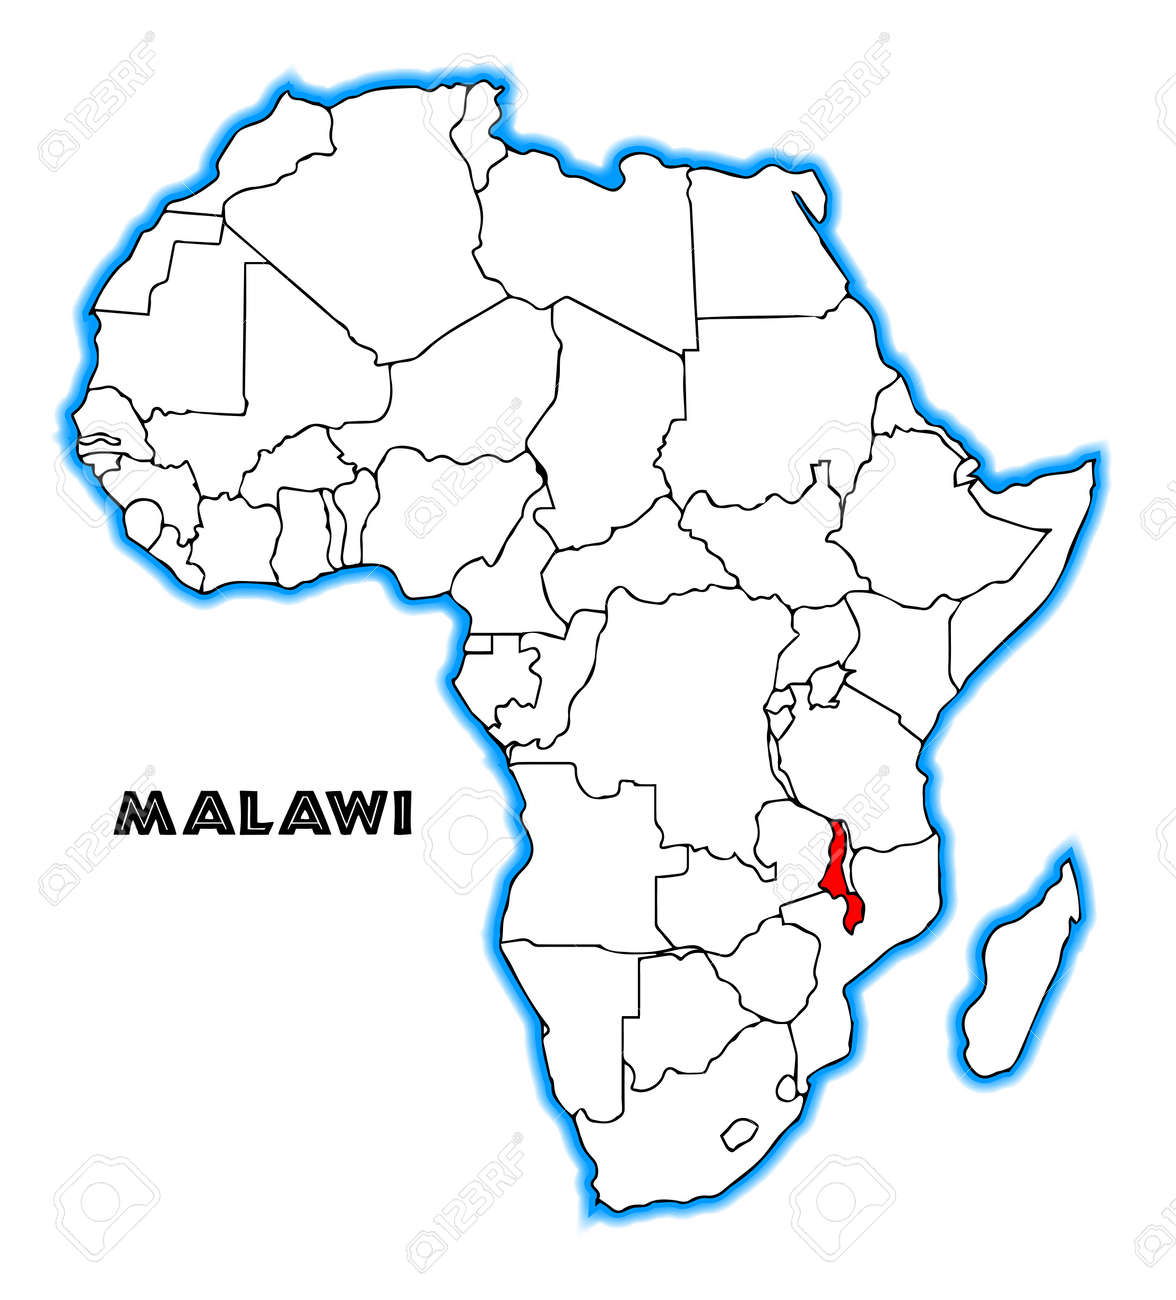 Malawi outline inset into a map of Africa over a white background on malawi religion, malawi food, malawi currency, europe map, malawi culture, malawi animals, malawi president, malawi landscape, malawi army, world map, malawi people, malawi flag, malawi sports, malawi houses, malawi capital, malawi wildlife,